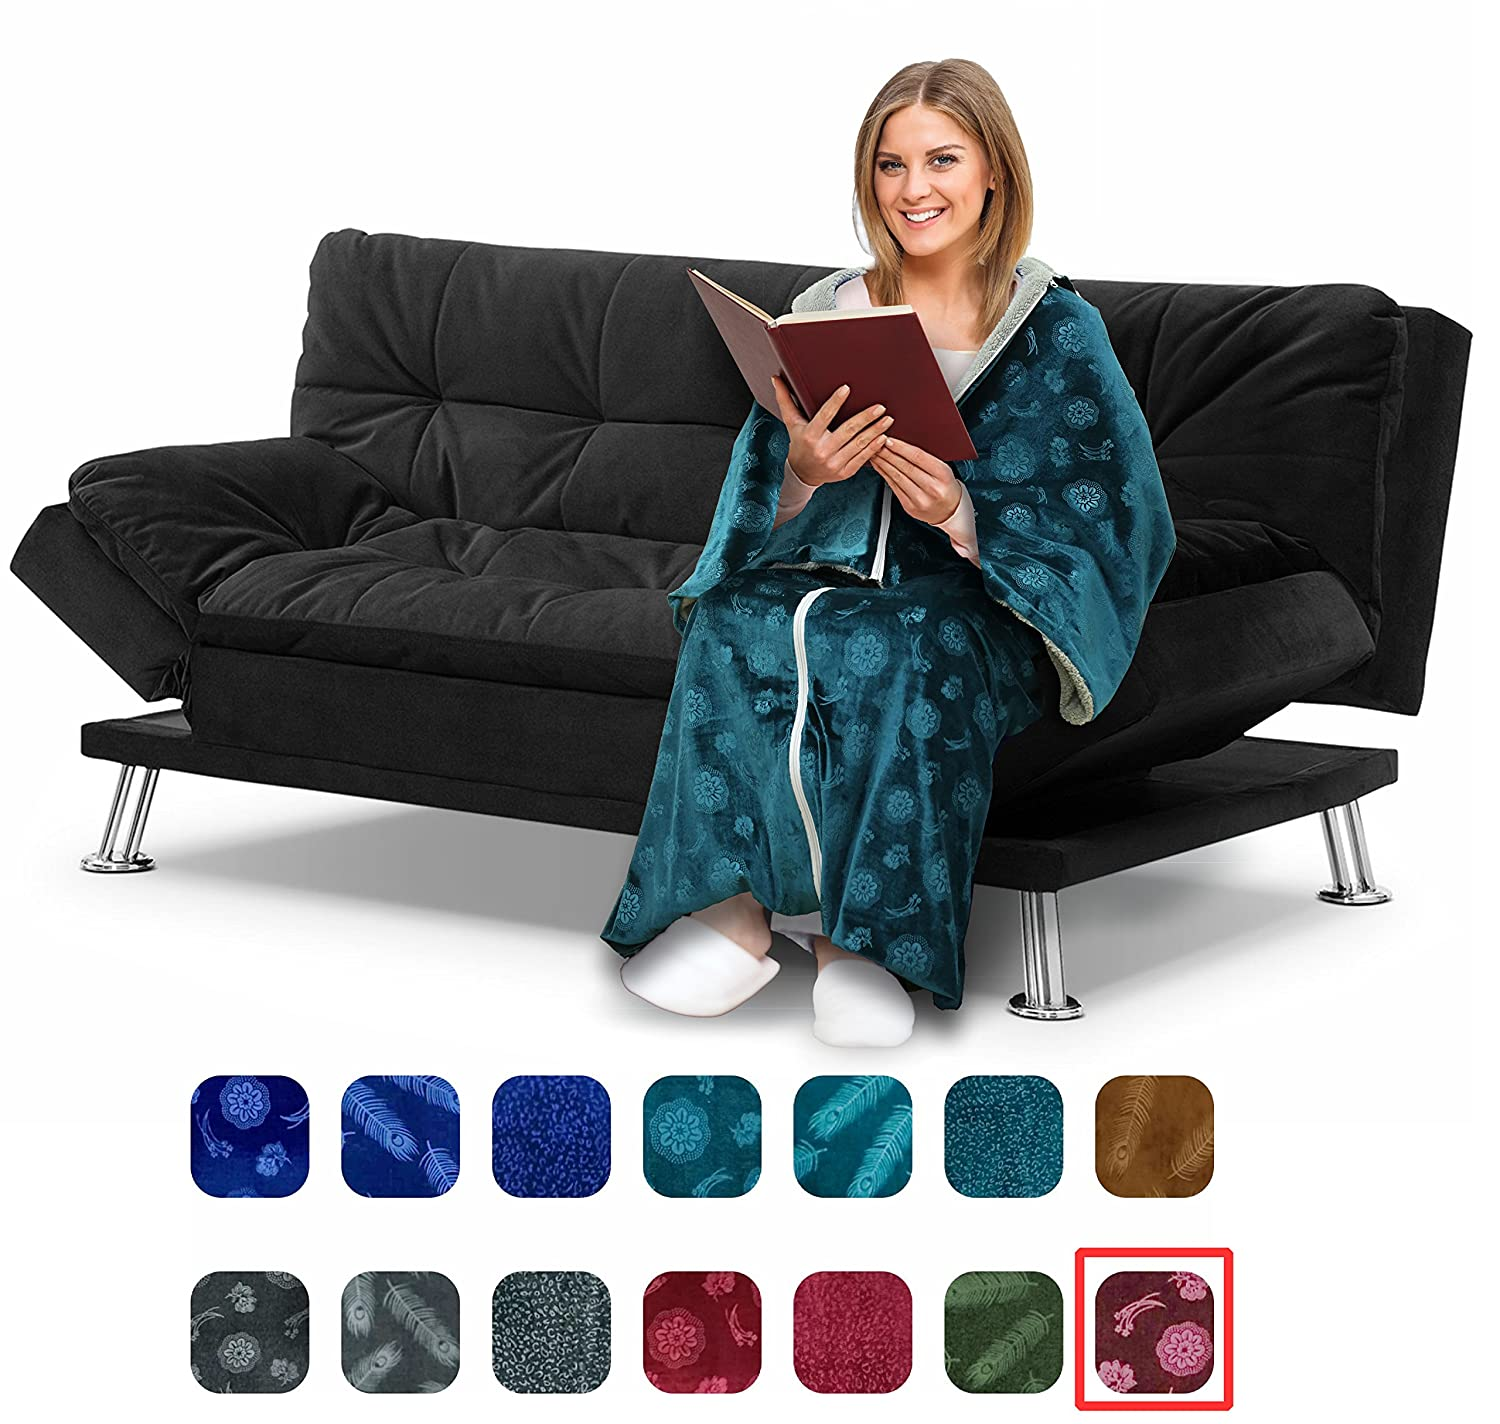 Wheelchairs Extra Soft Plush Throw Blanket or Watching TV Ideal for Elderly /& Handicap Clothing Cōzee Deluxe Wearable Blanket for Adults Cozy Emerald-Feathers Elegant